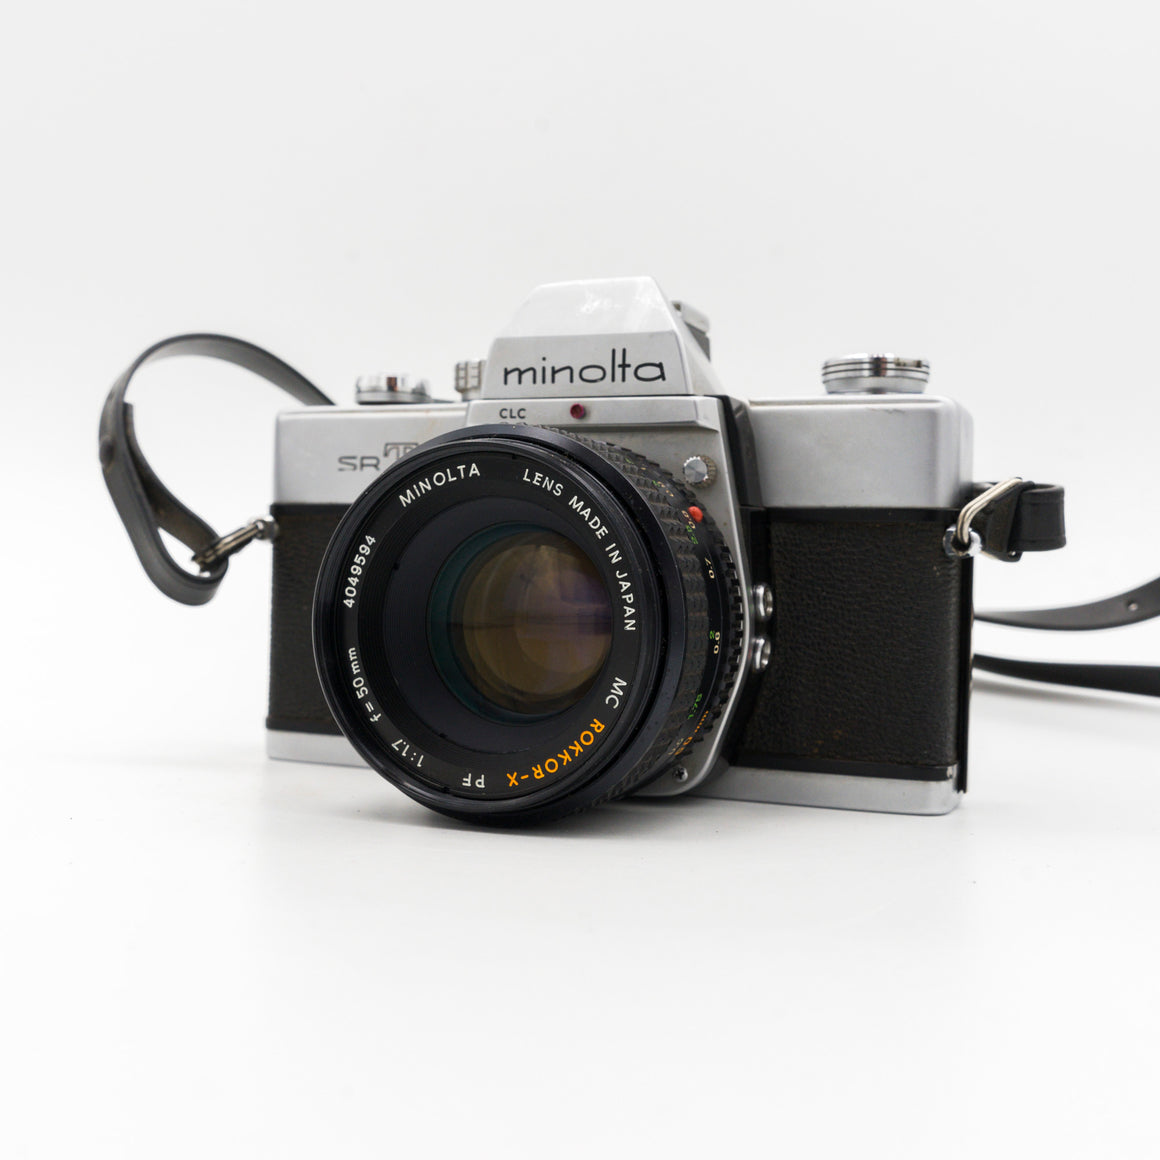 Minolta SRT 101 SLR Camera with 50mm f/1.7 Lens